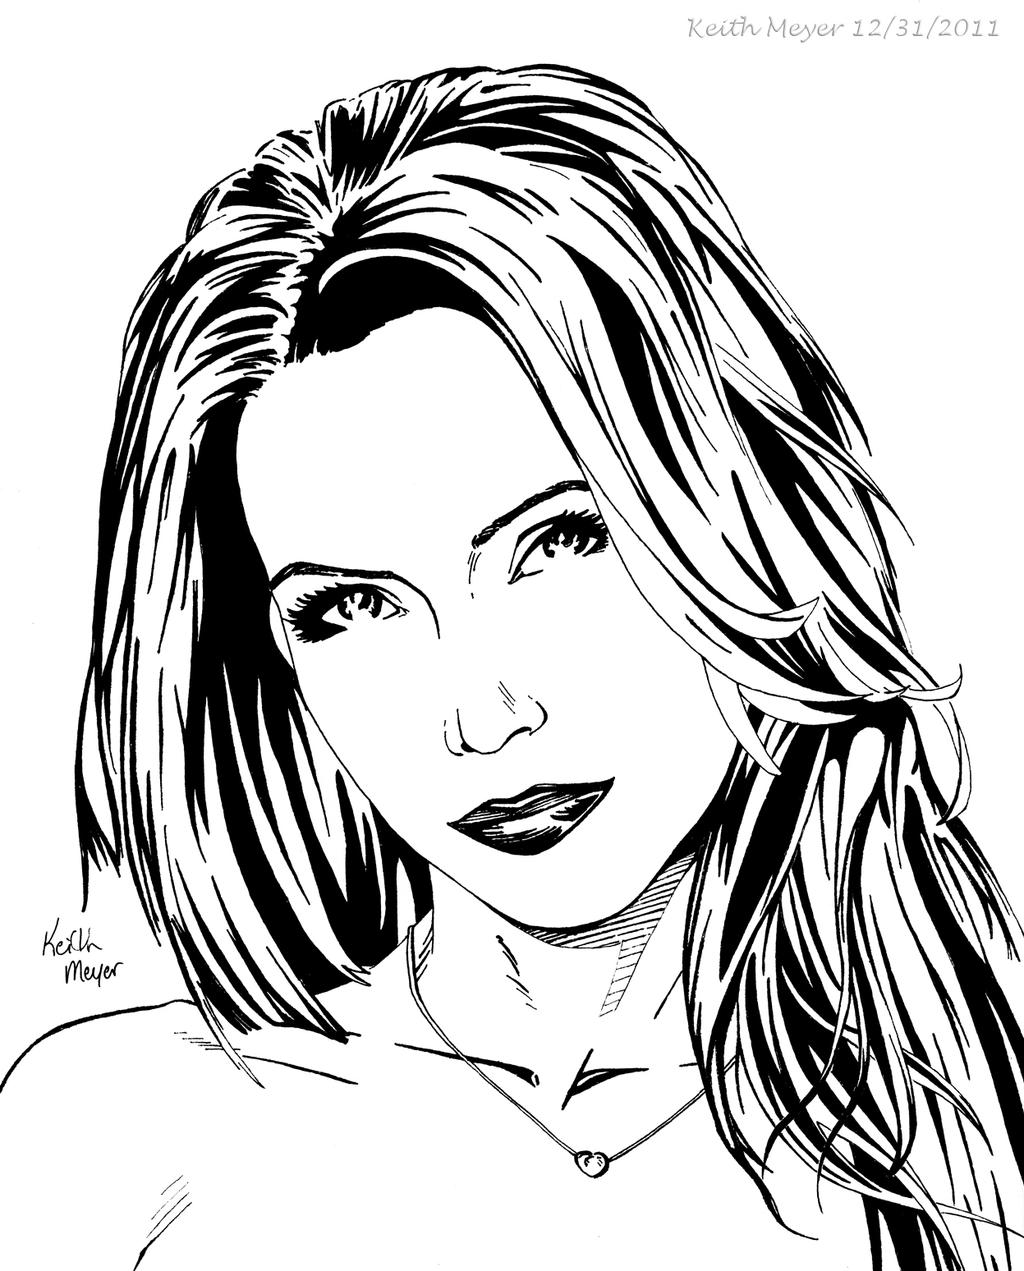 Line Drawing Female Face : Female portrait ink by keithmeyerart on deviantart